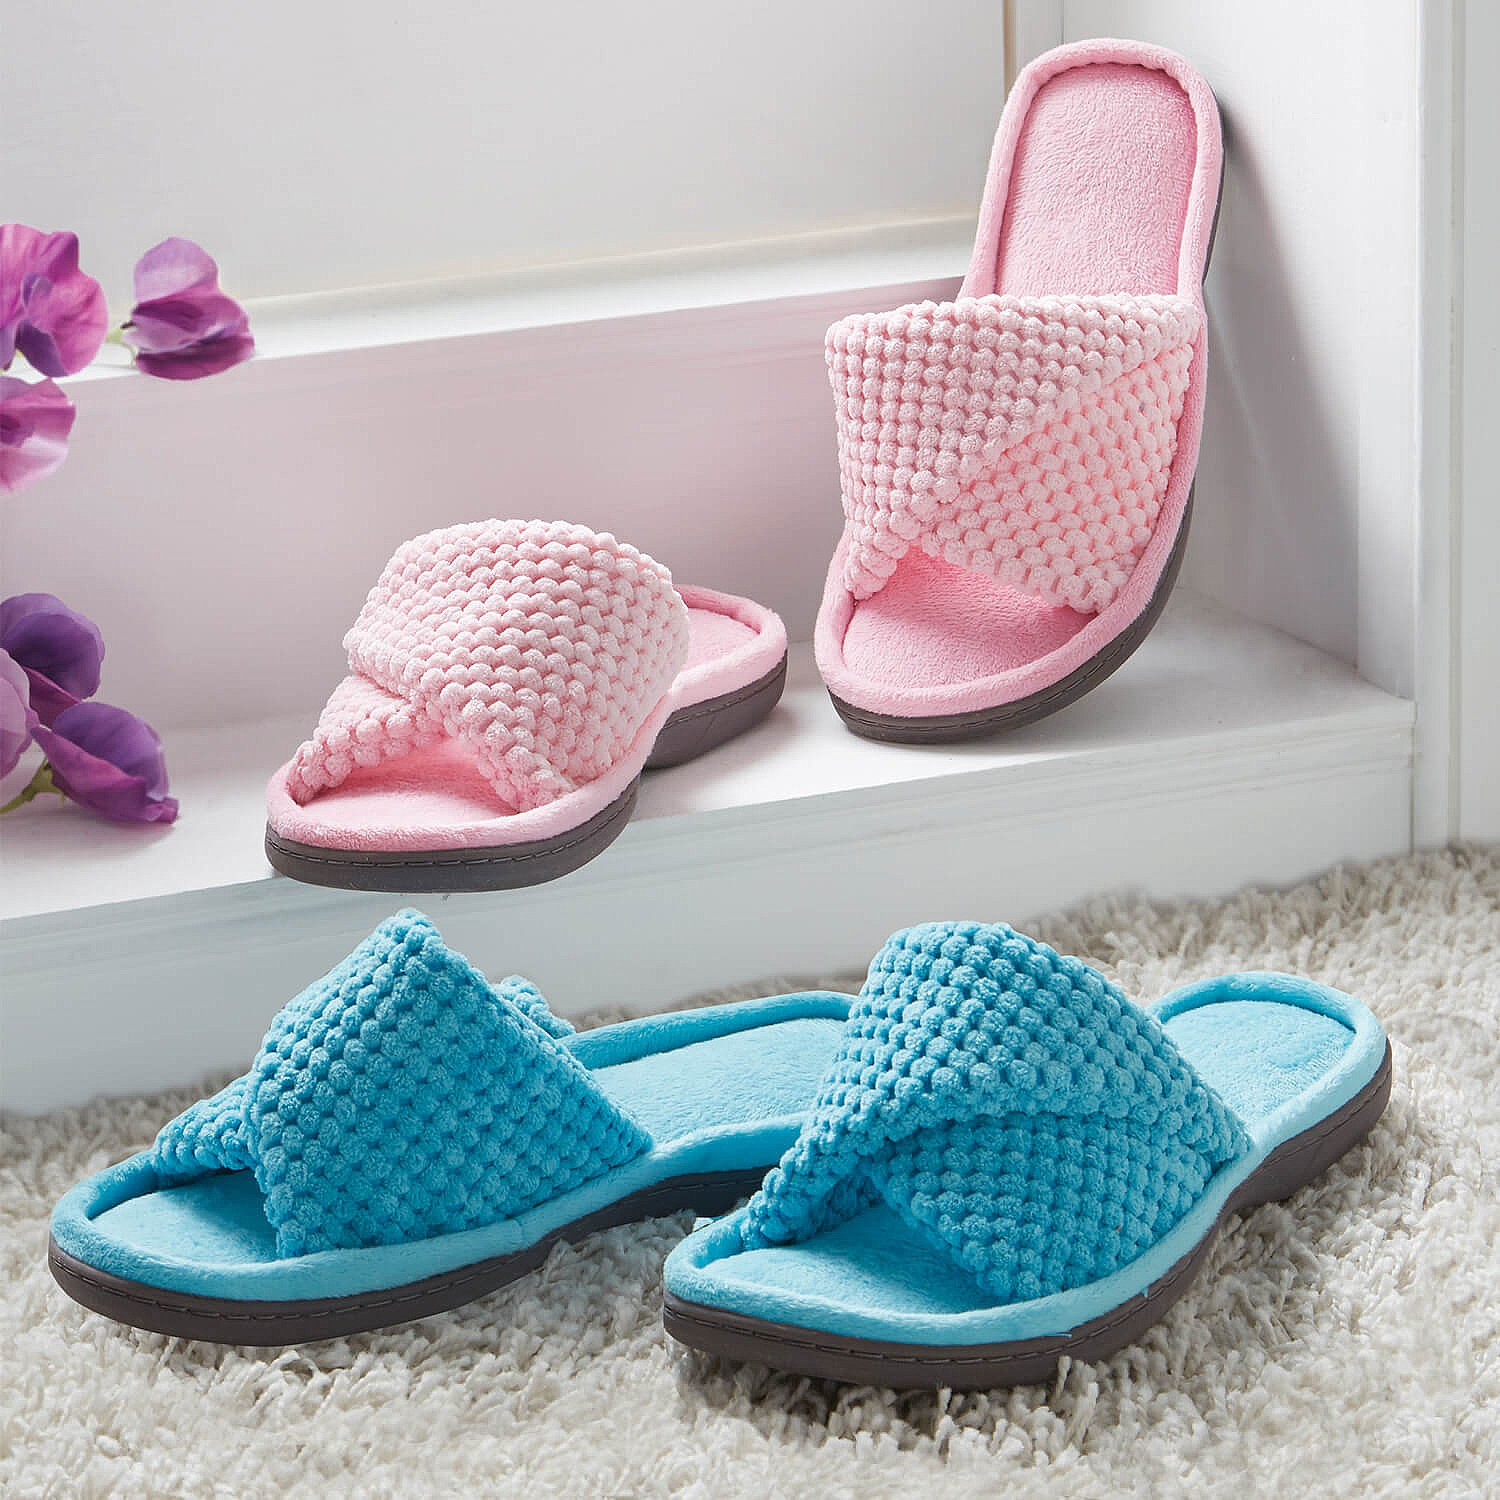 General Clothing Ladies Mule Slippers Pink Small by Coopers of Stortford